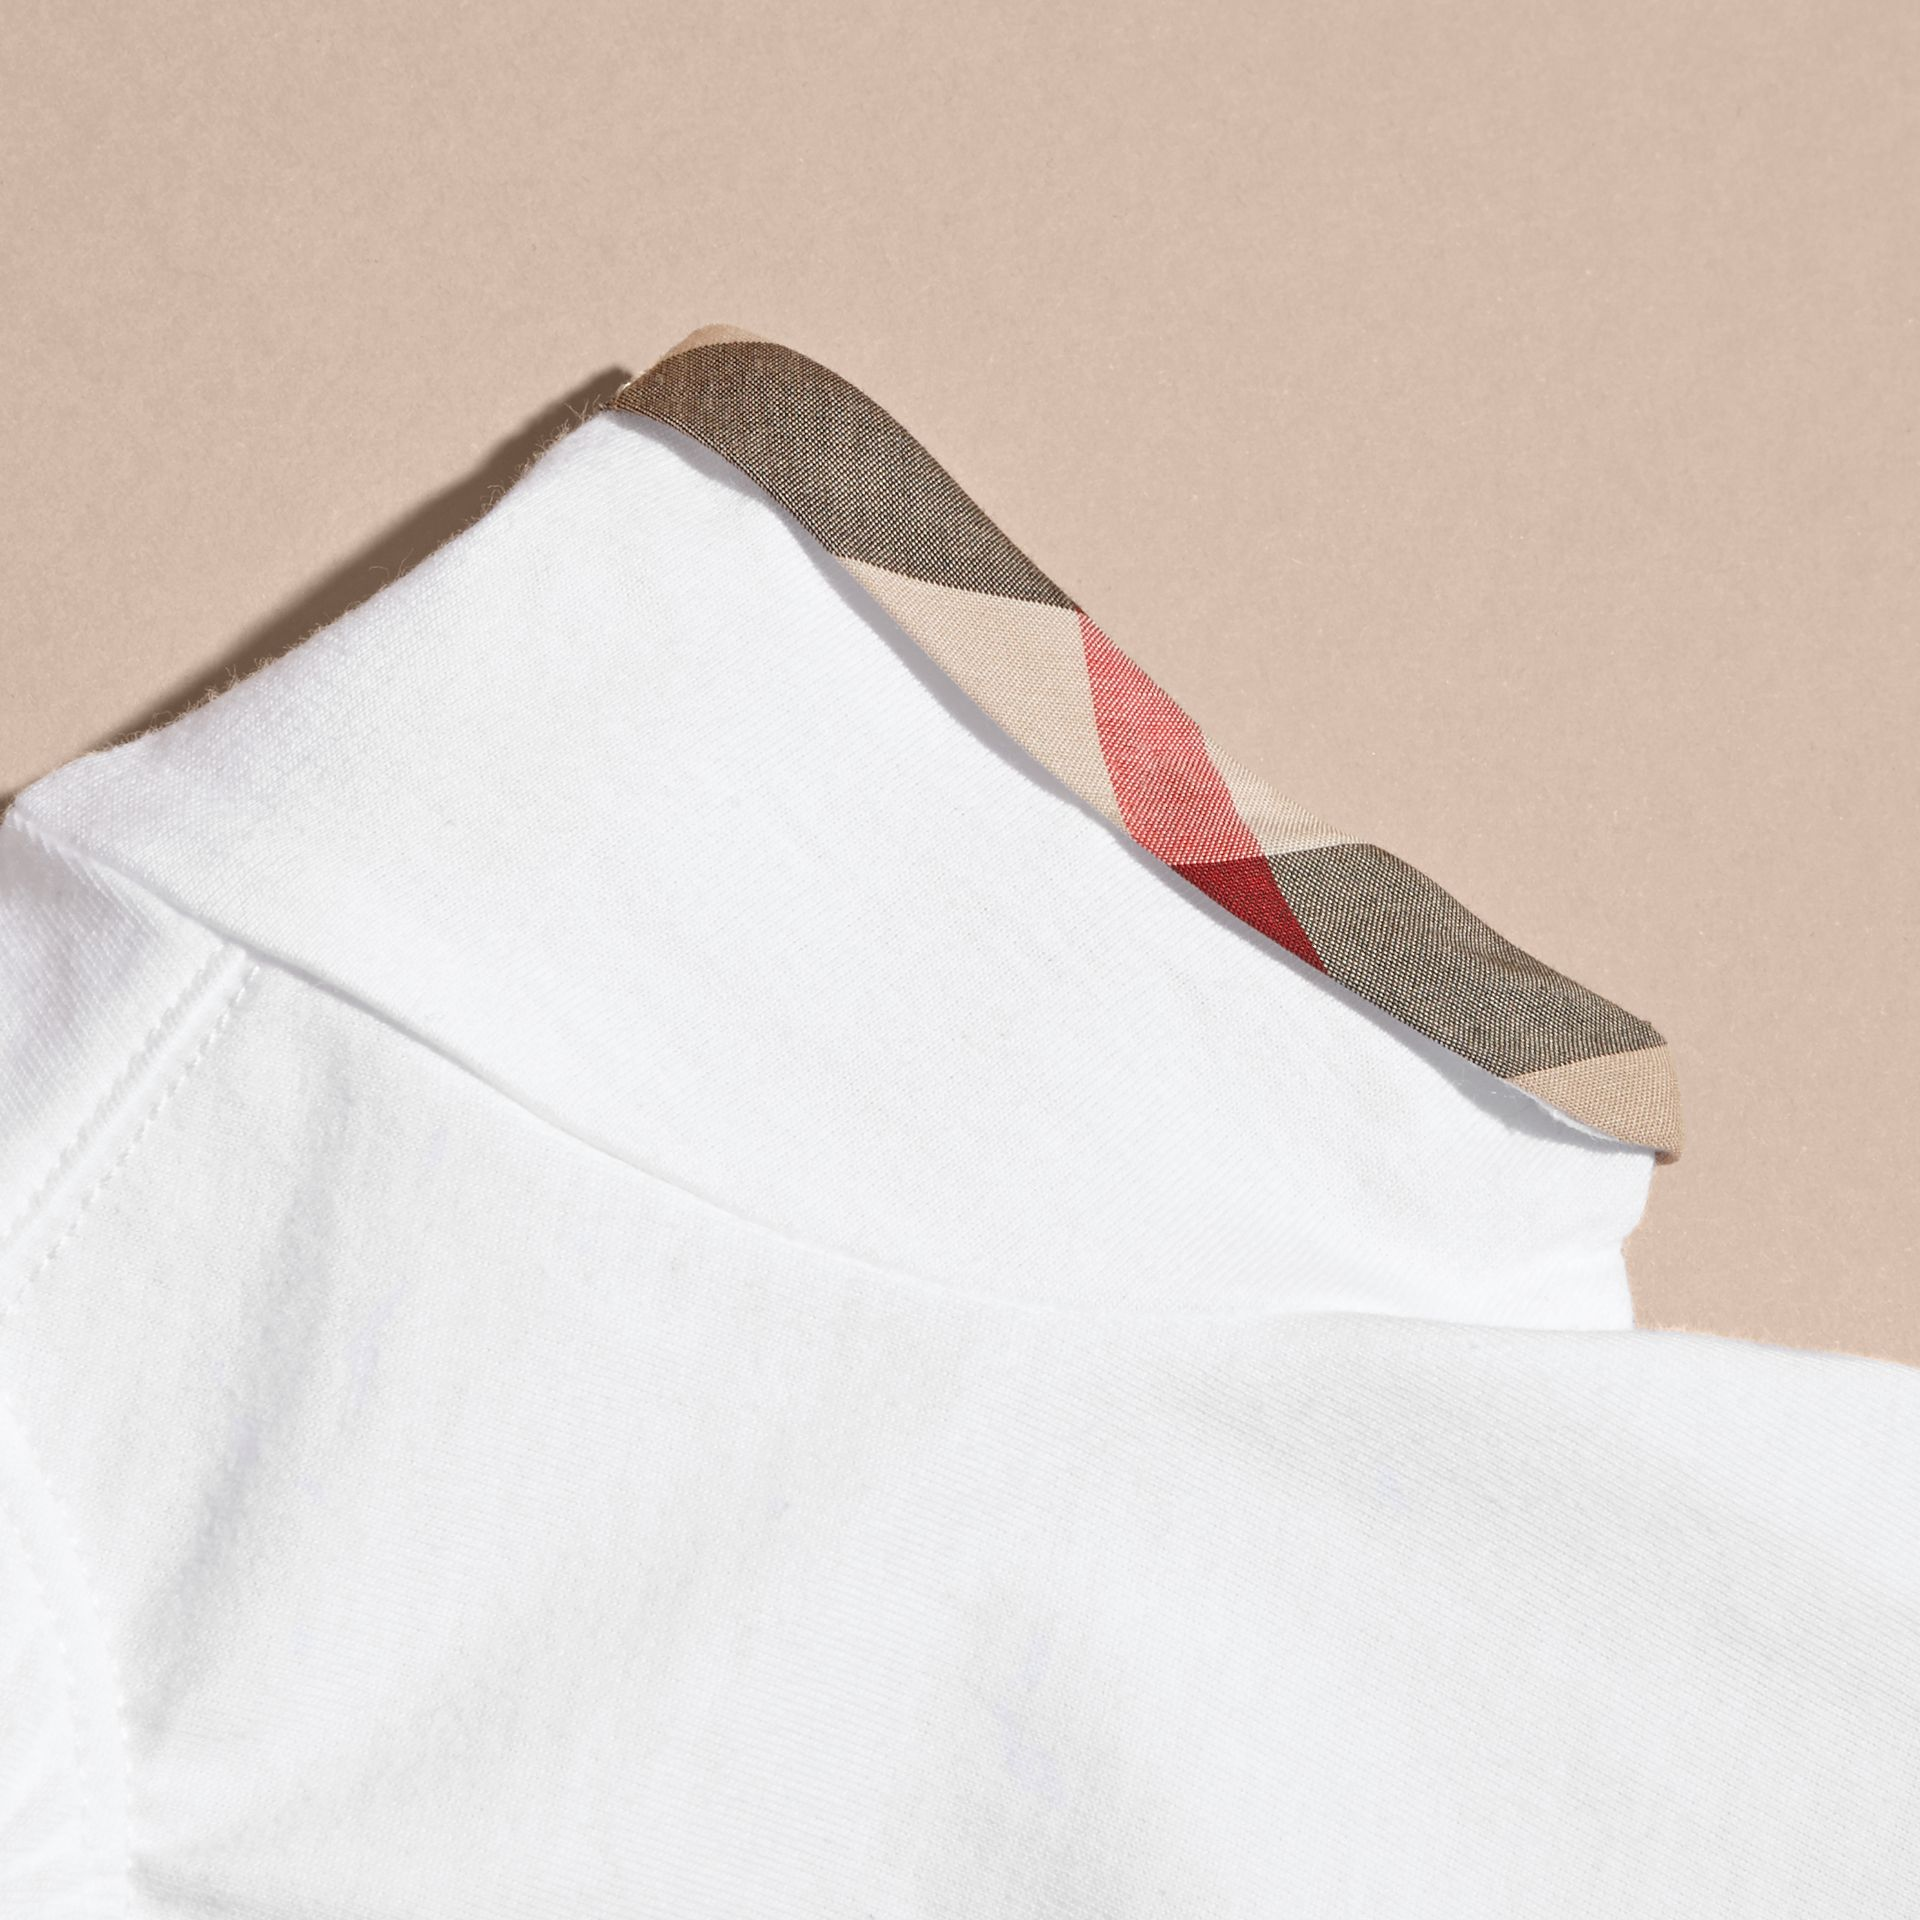 Pleat and Check Detail Cotton T-shirt in White | Burberry Canada - gallery image 2